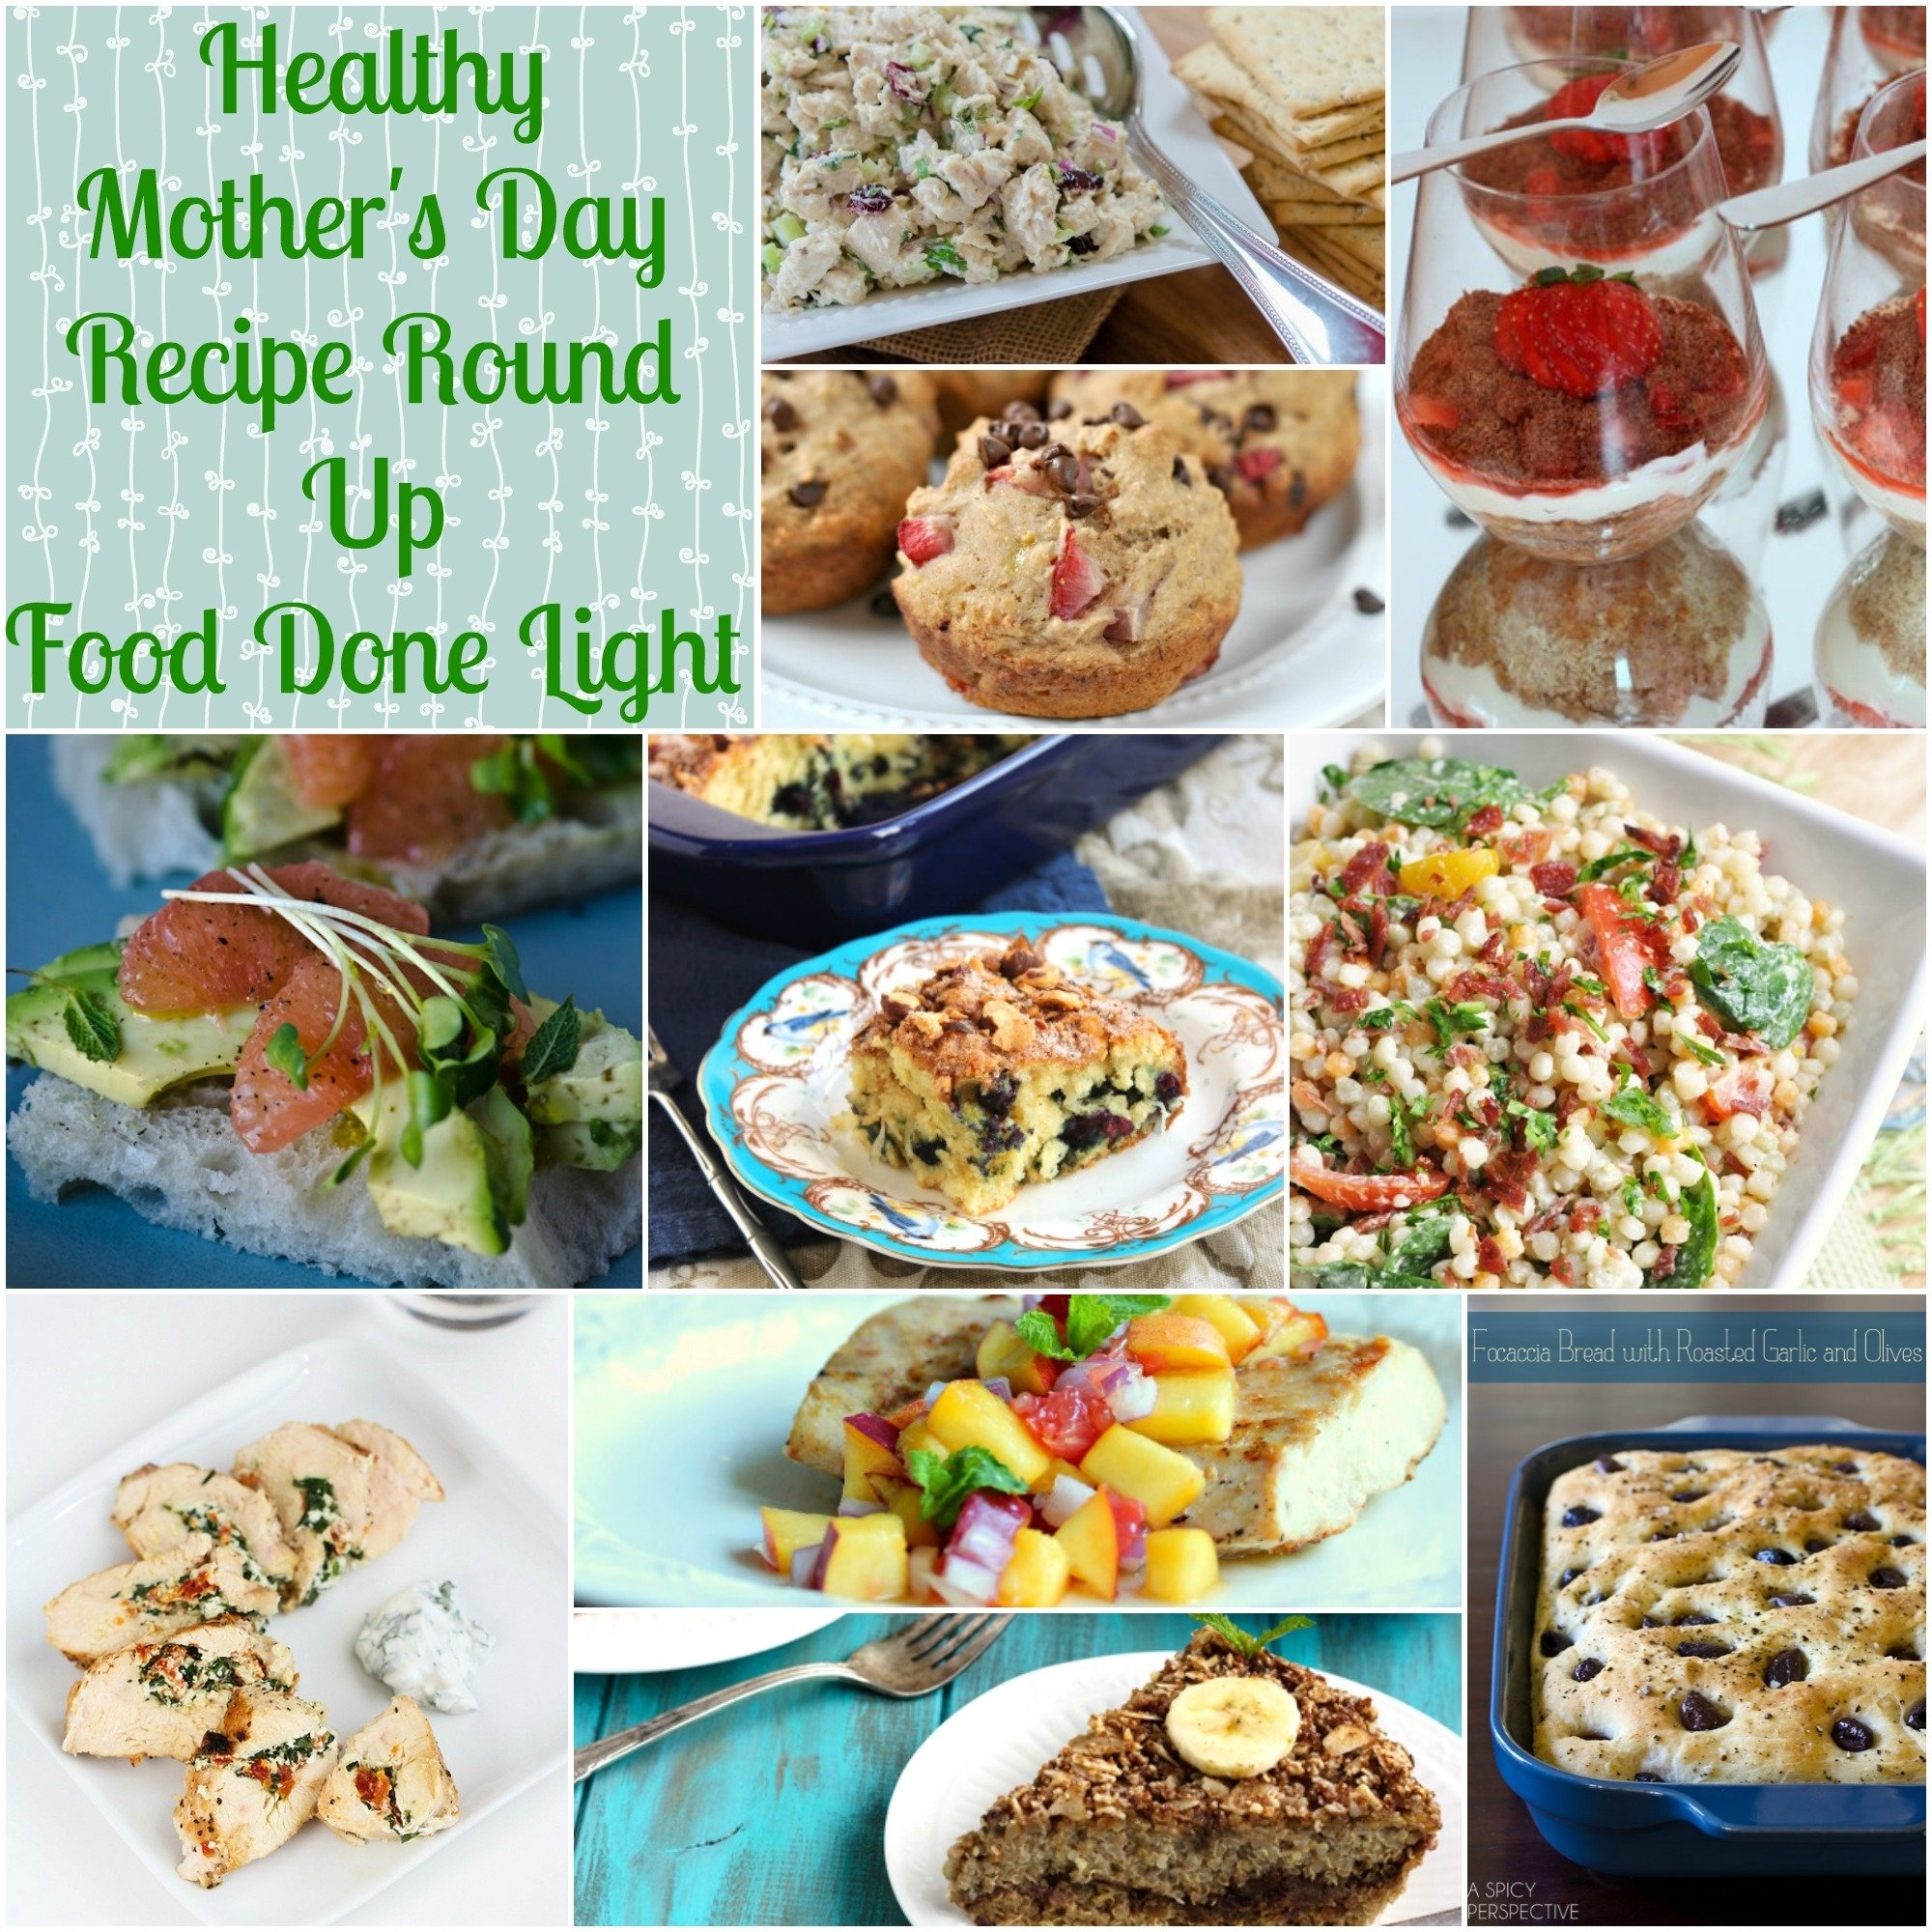 healthy mother's day recipe round up - food done light